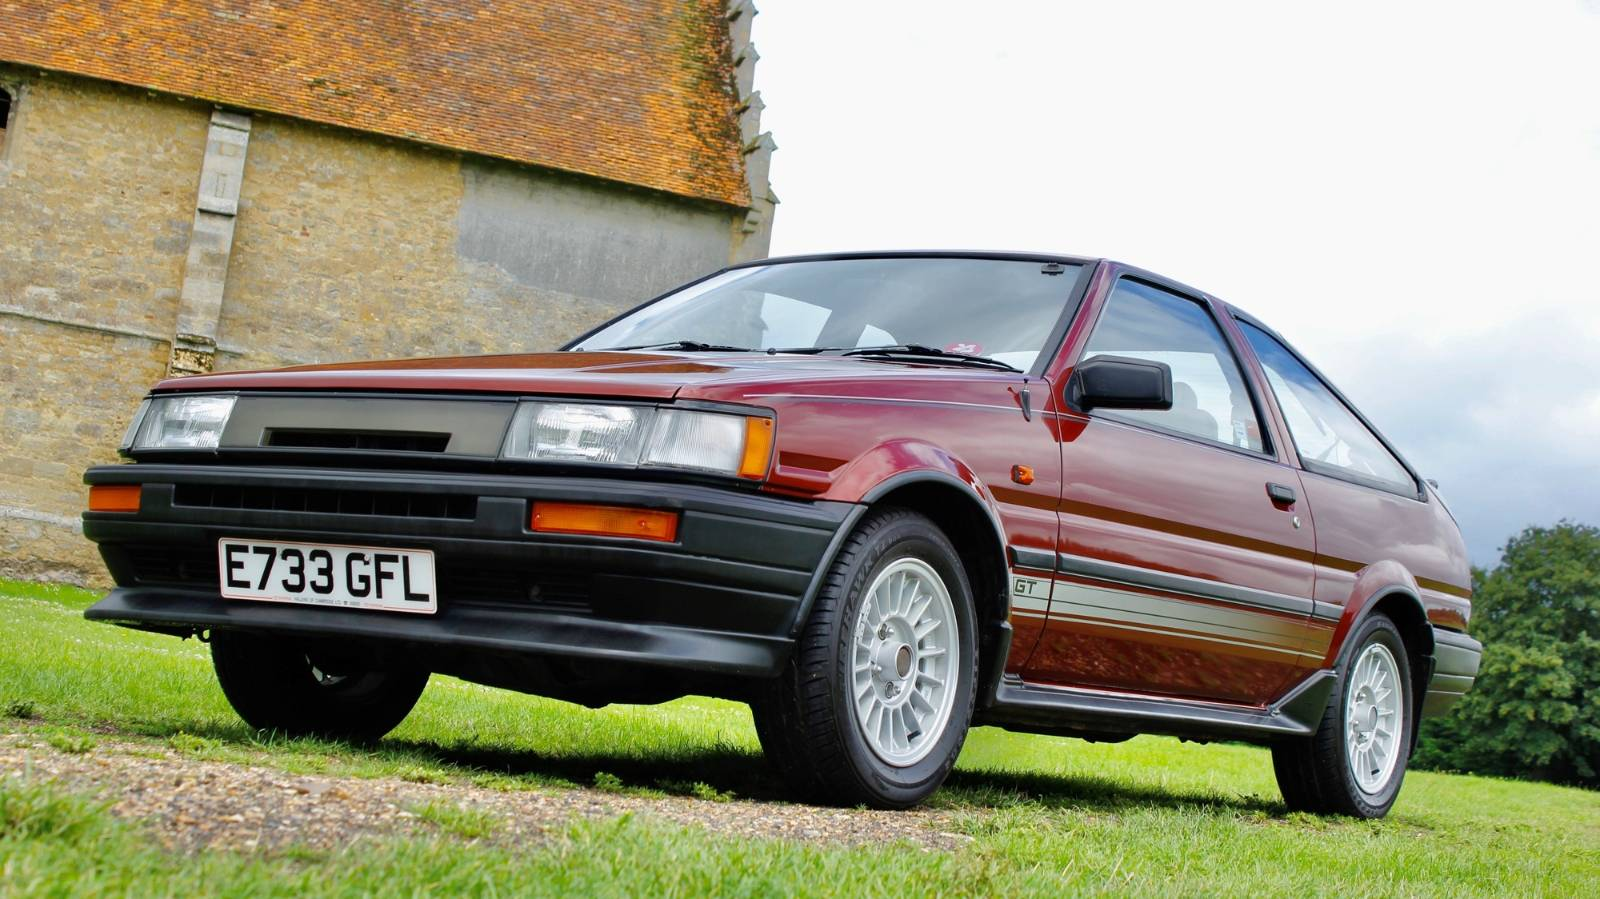 Would you pay $90k for a 1987 Toyota Corolla?